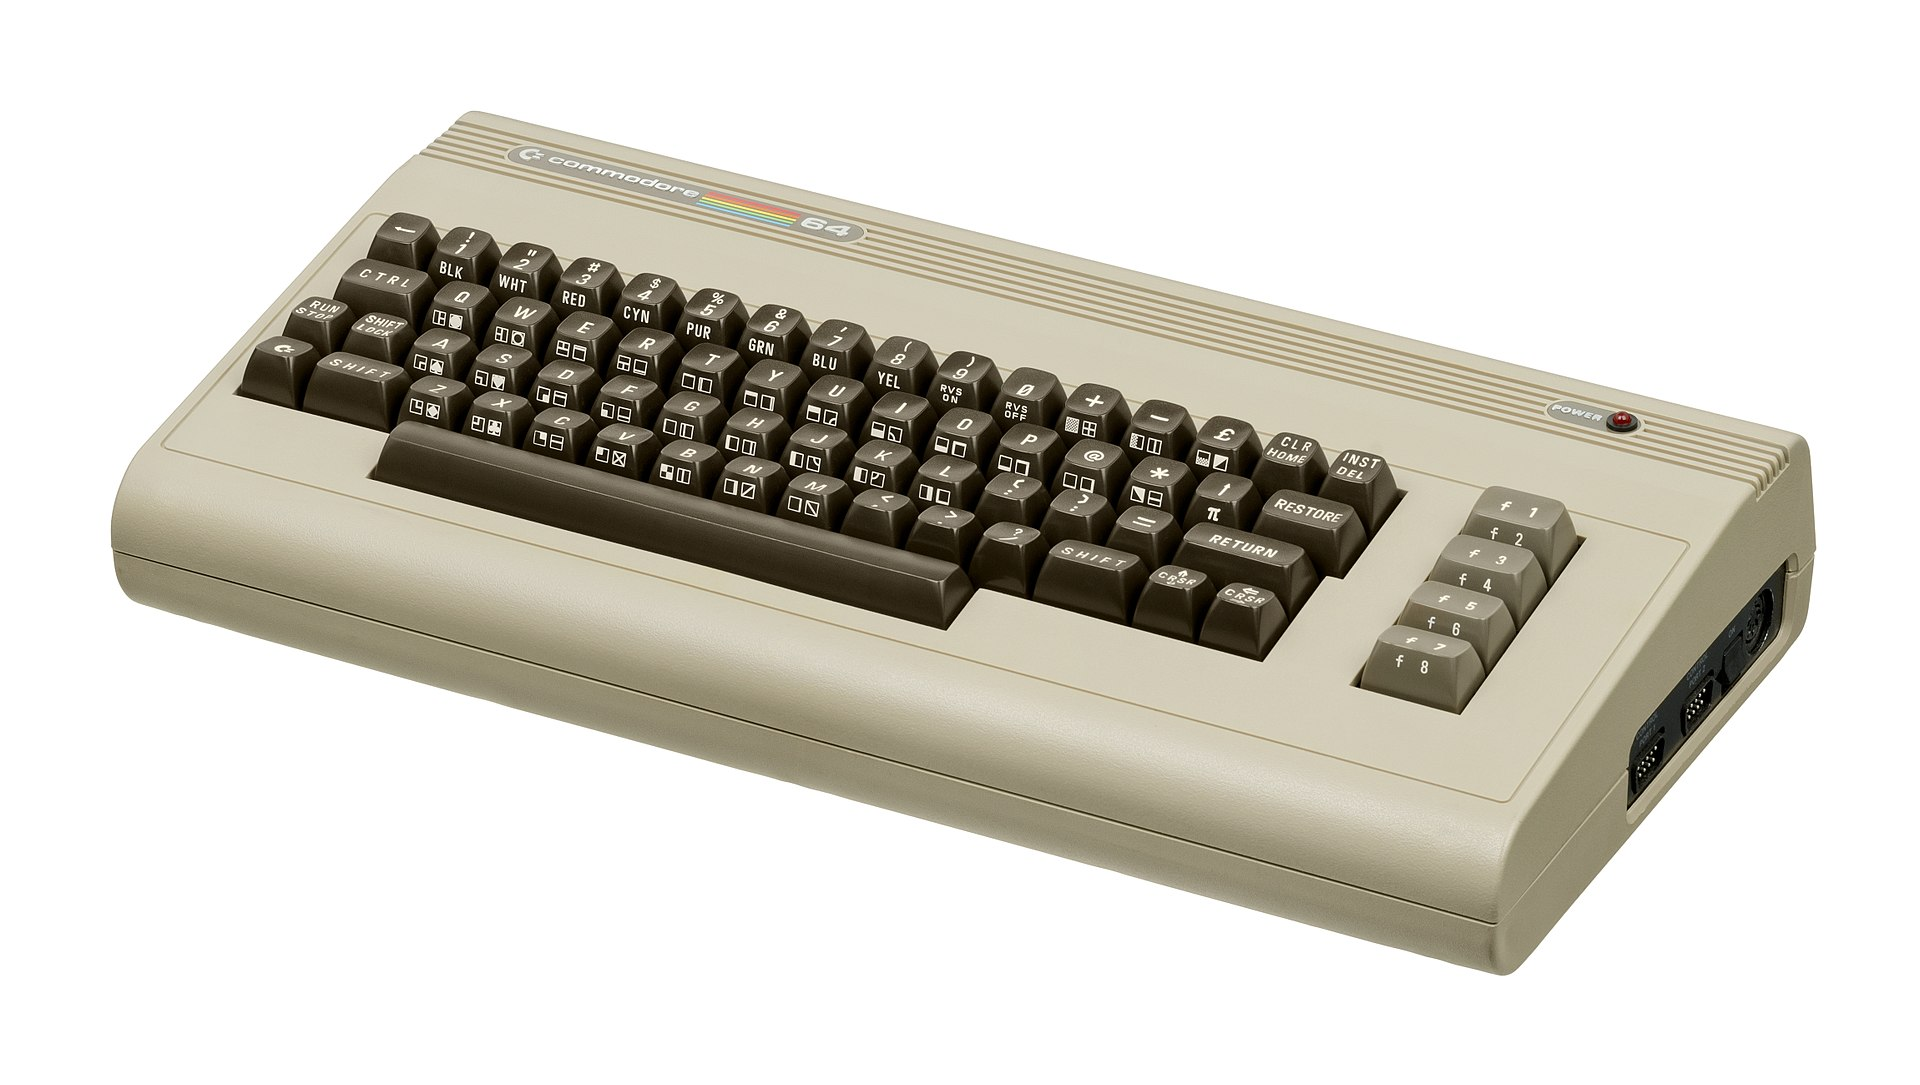 The C64 Breadbin, the best selling computer of the 80's.